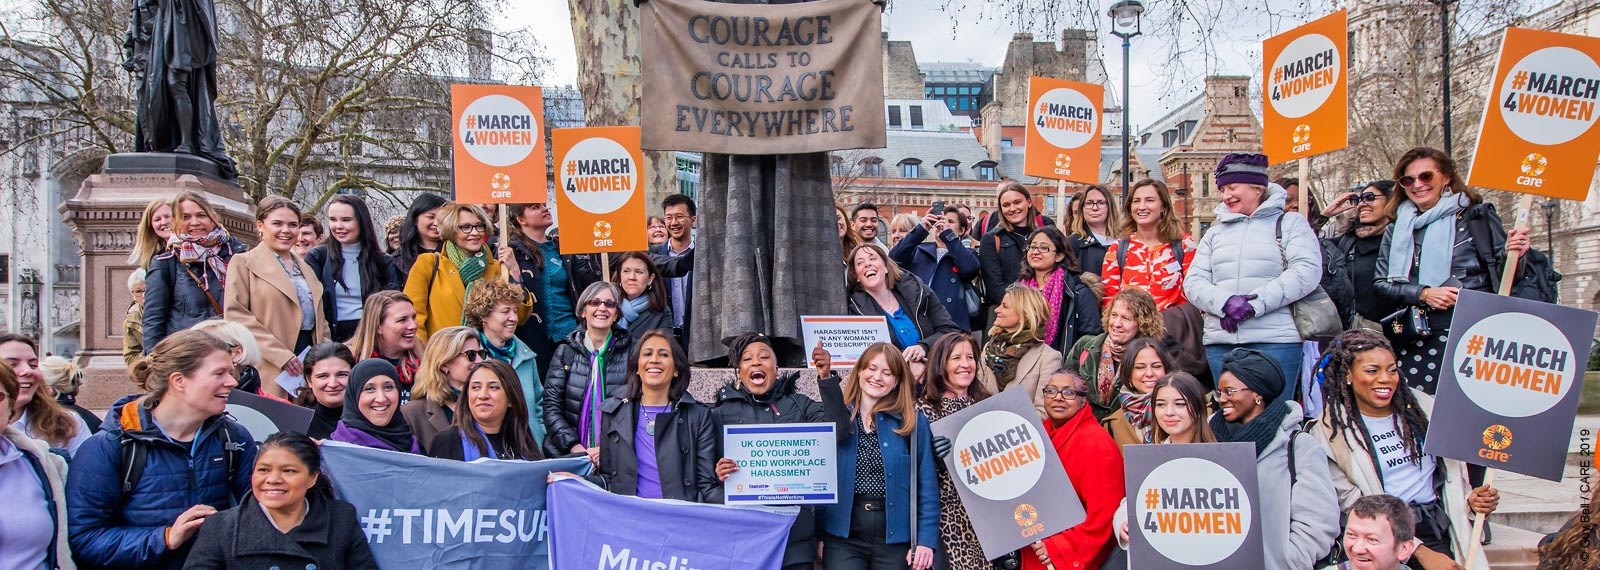 Campaigners on CARE lobby action day